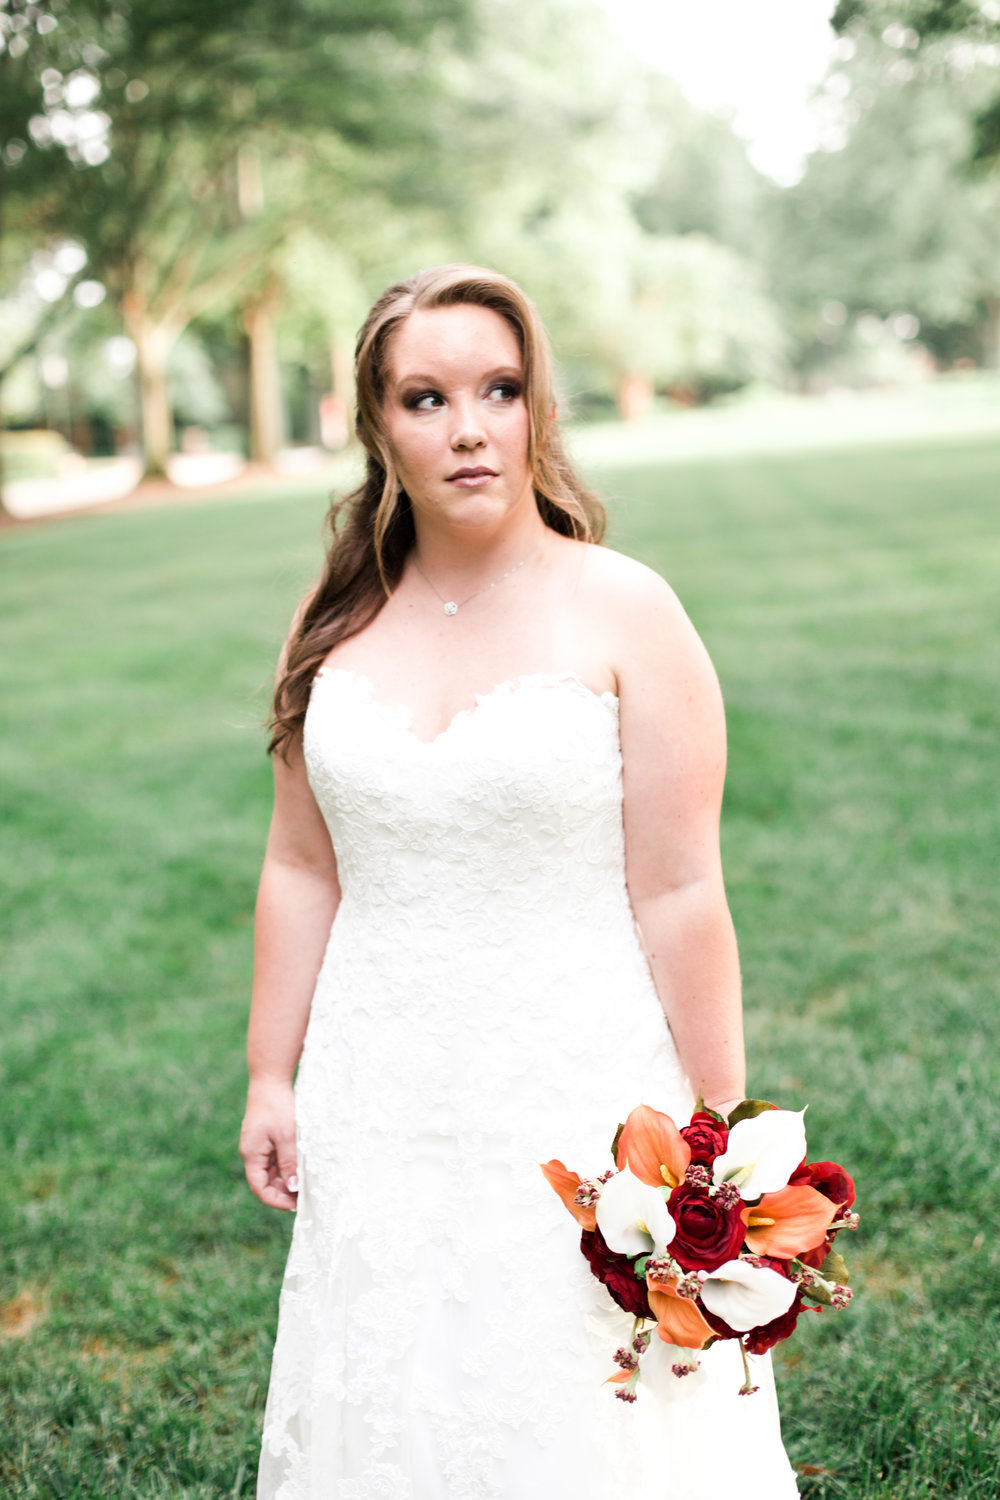 gabbie_bridal_poured_out_photography-47.jpg